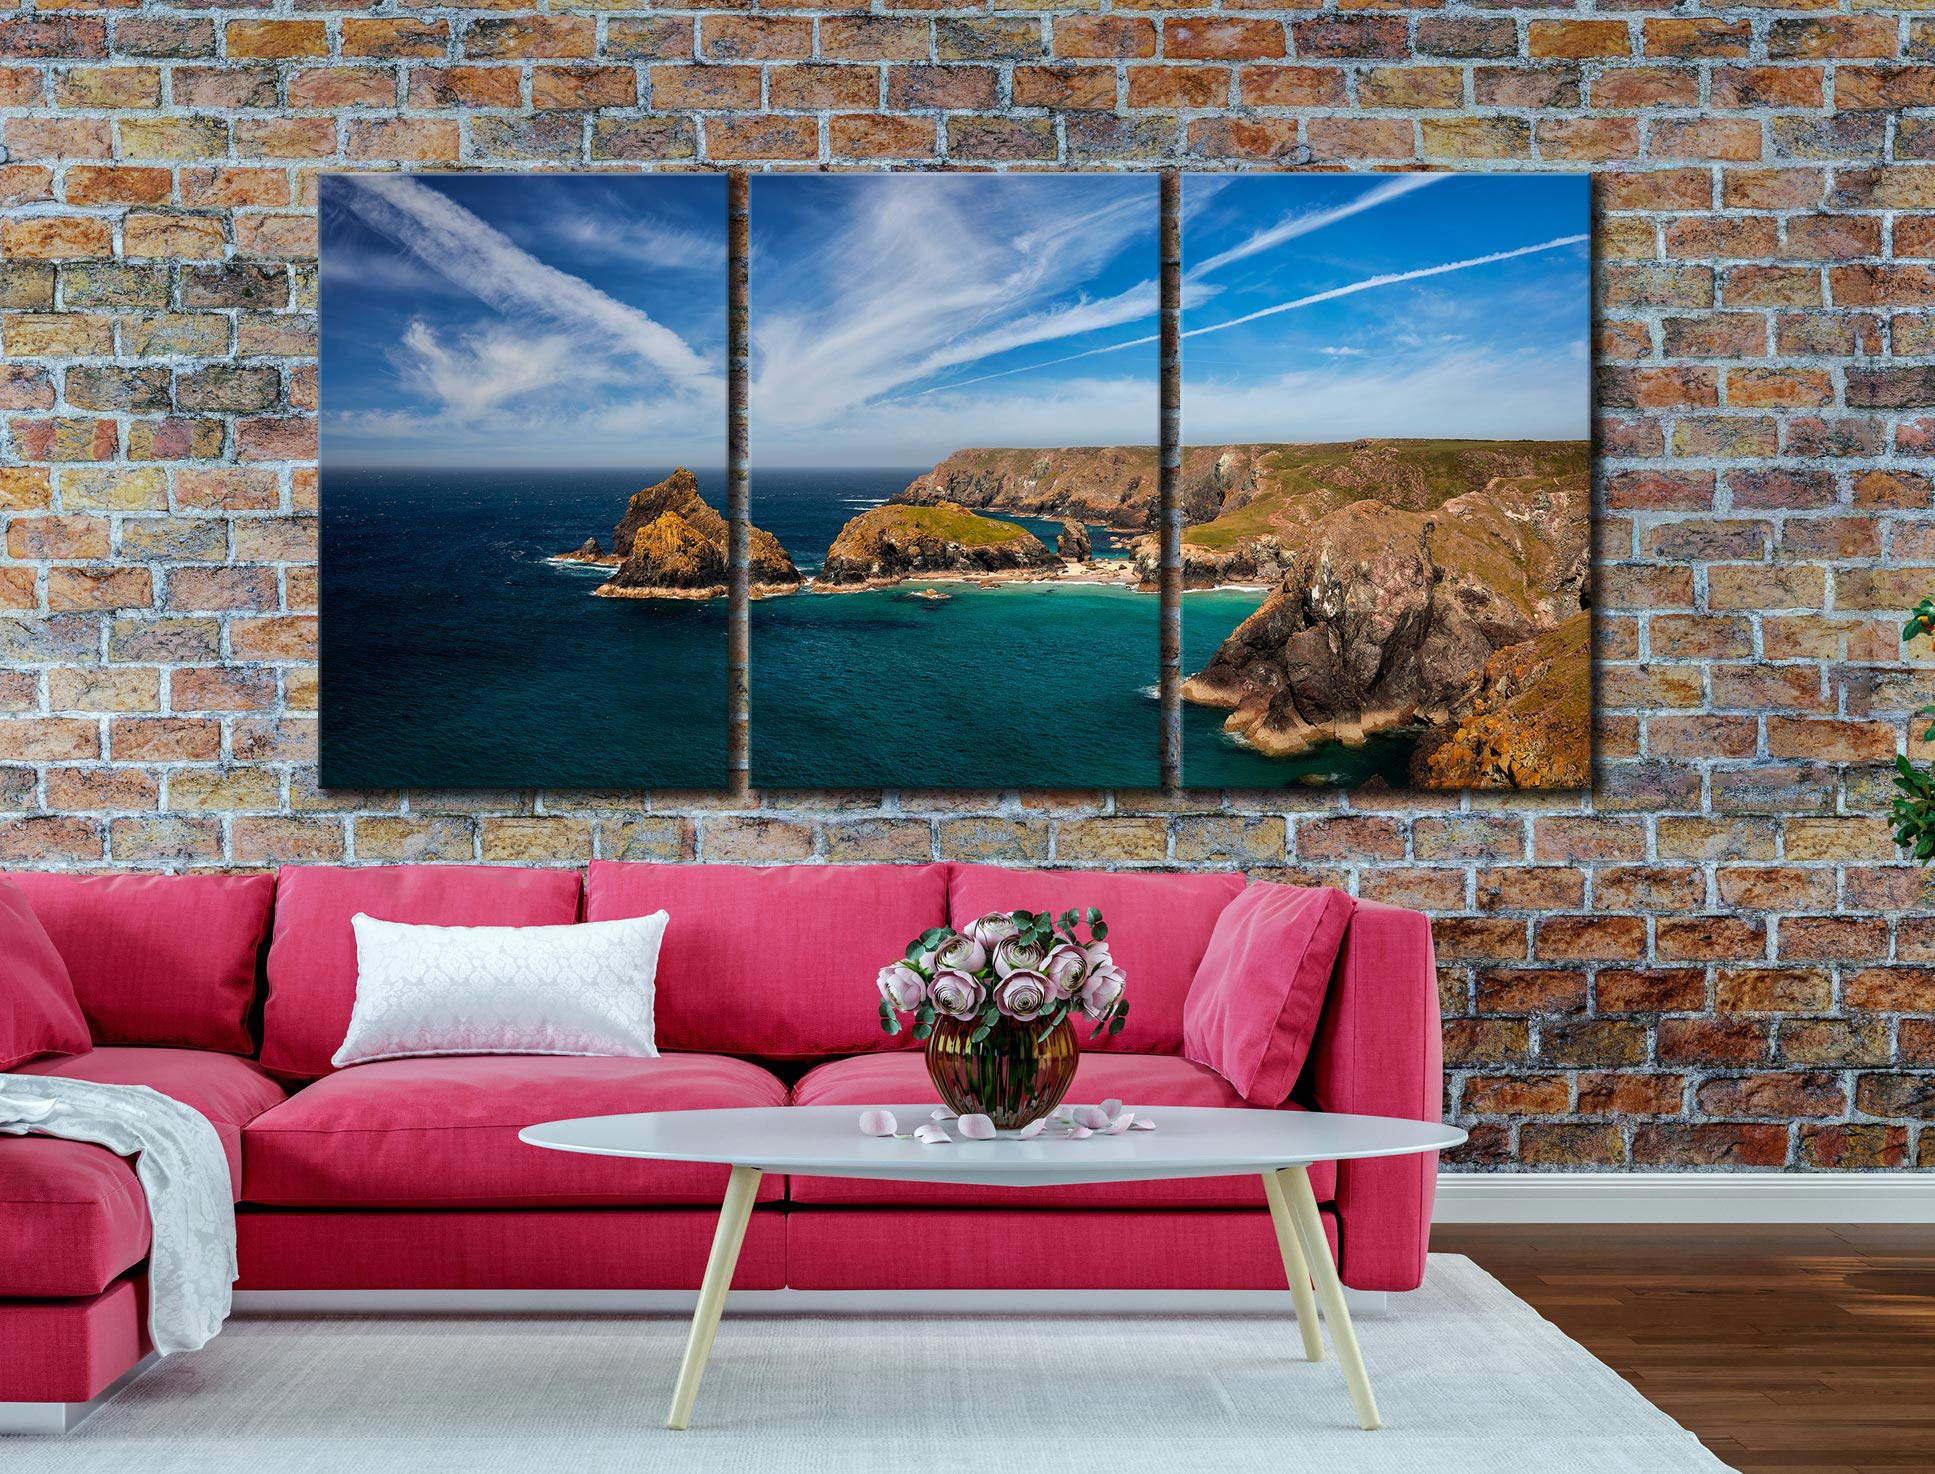 Green Ocean Kynance Cove - 3 Panel Canvas on Wall